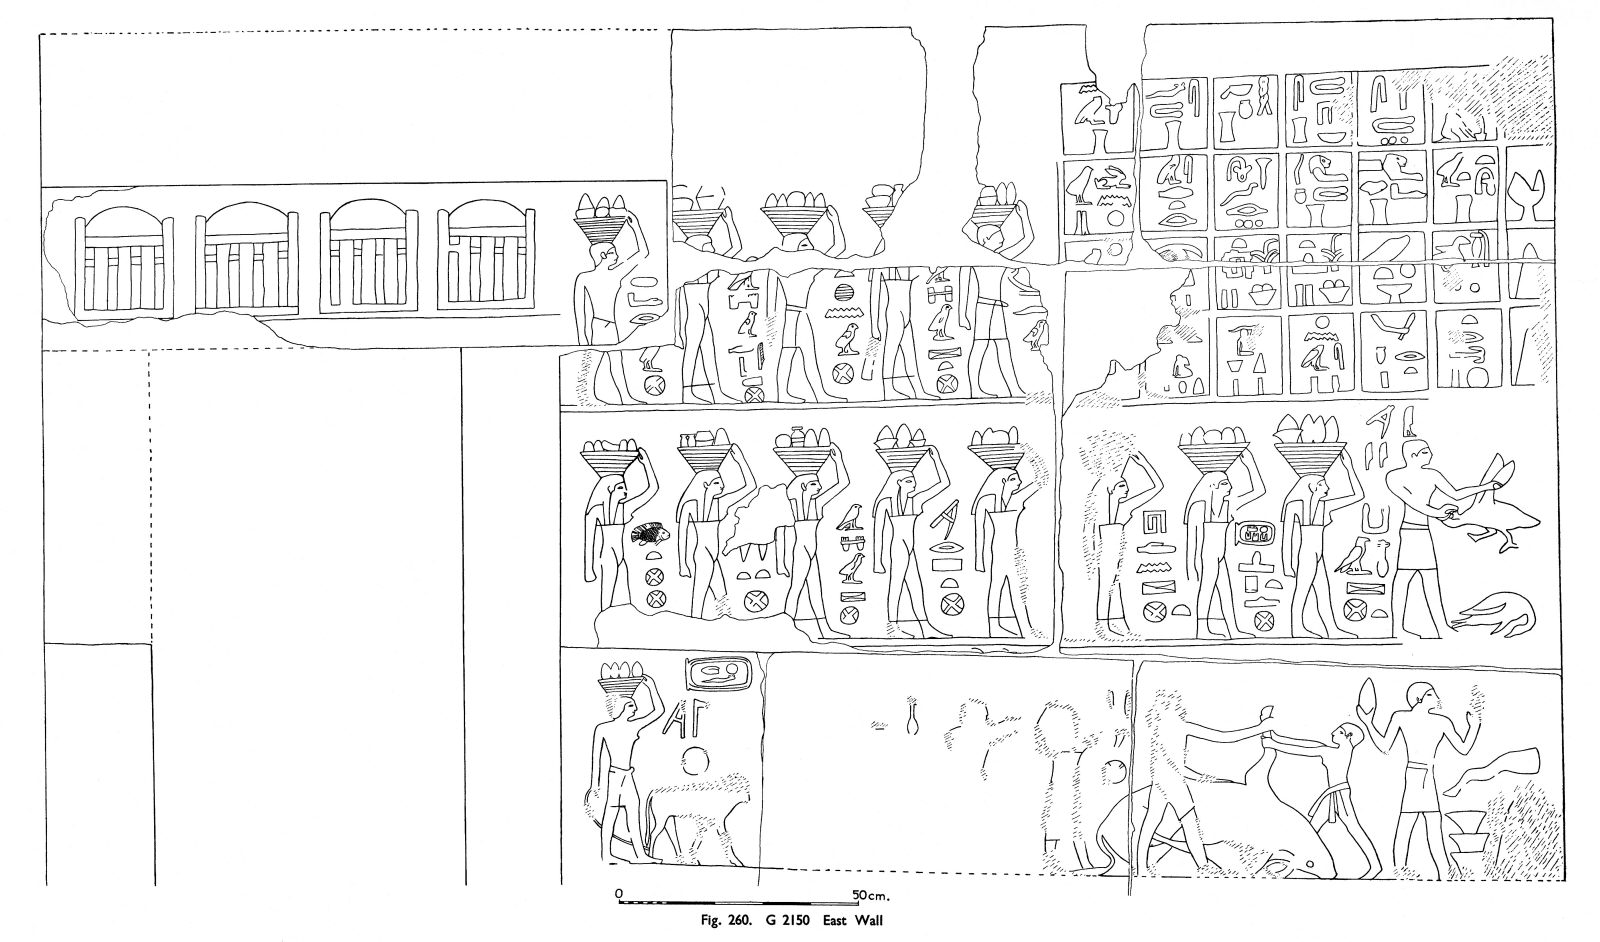 Drawings: G 2150: relief from interior chapel (room a), E wall